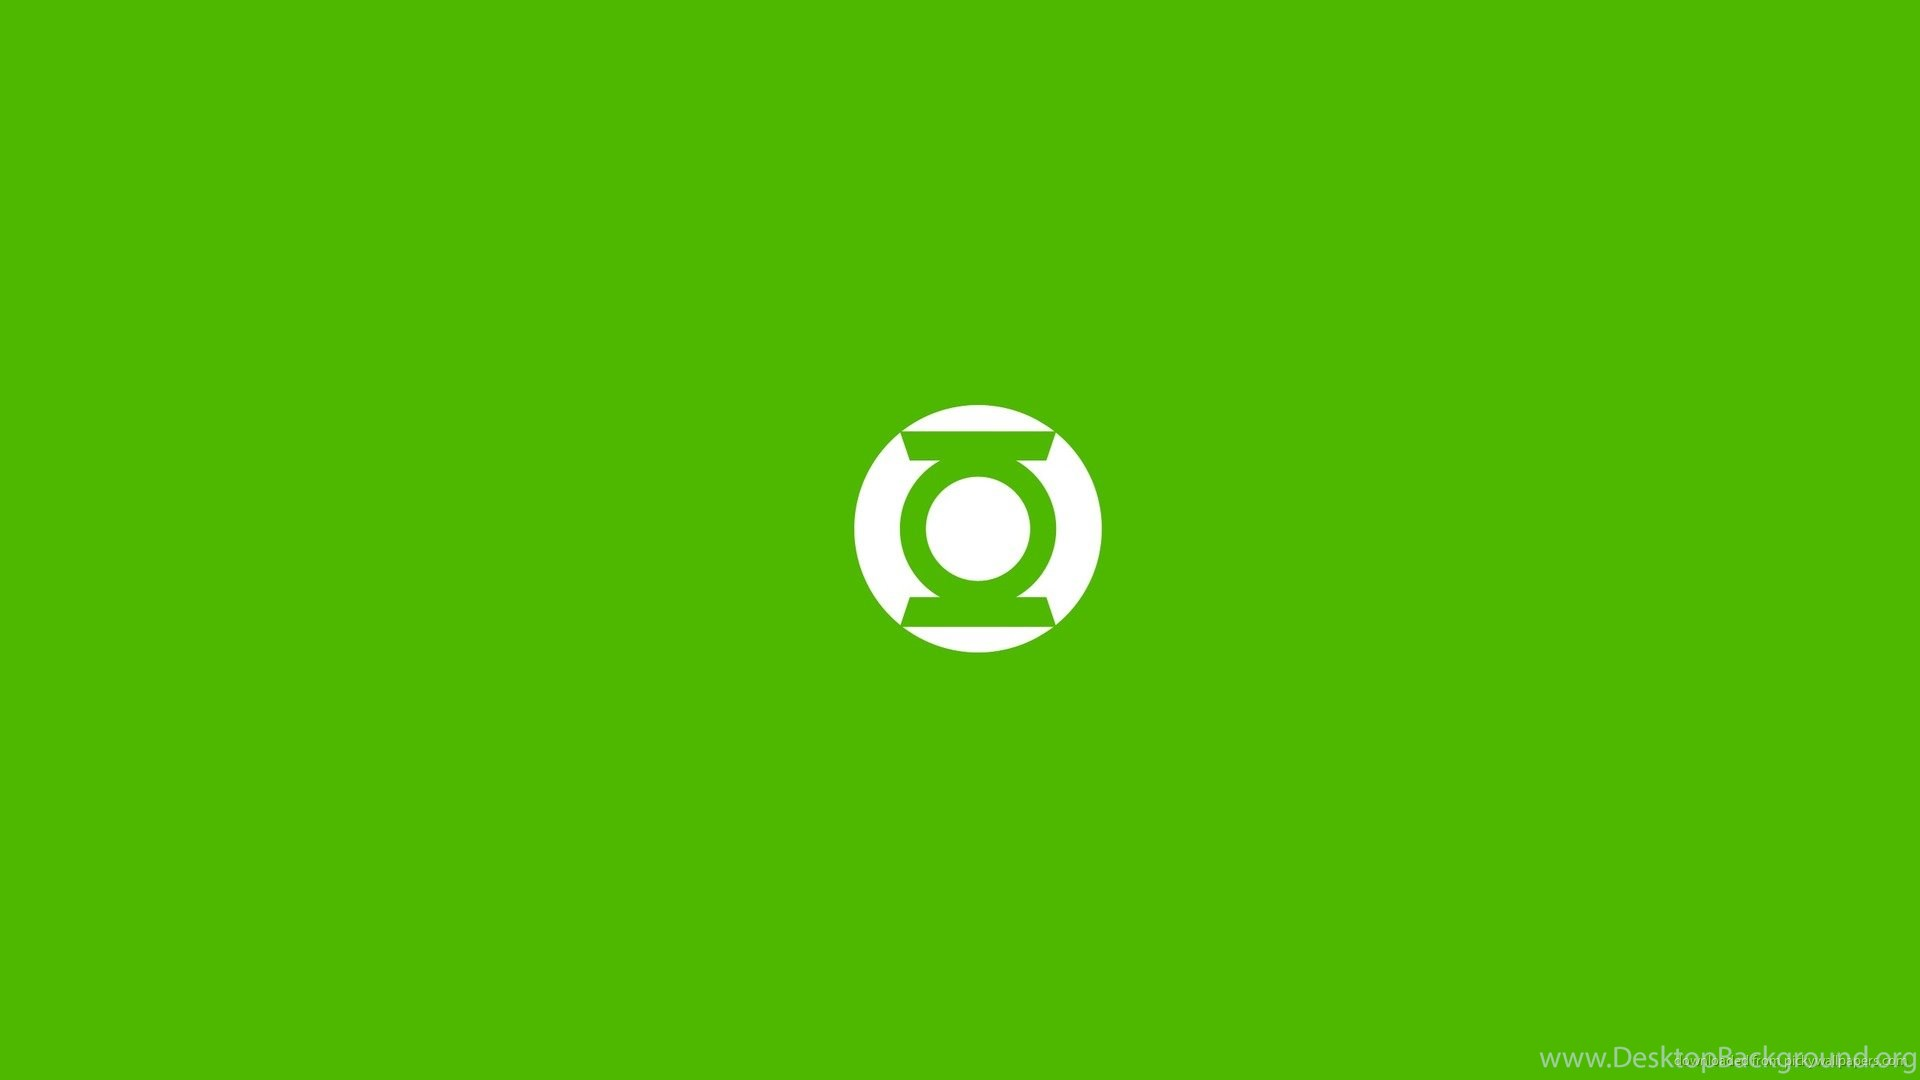 download 1920x1080 minimal green lantern wallpapers desktop background